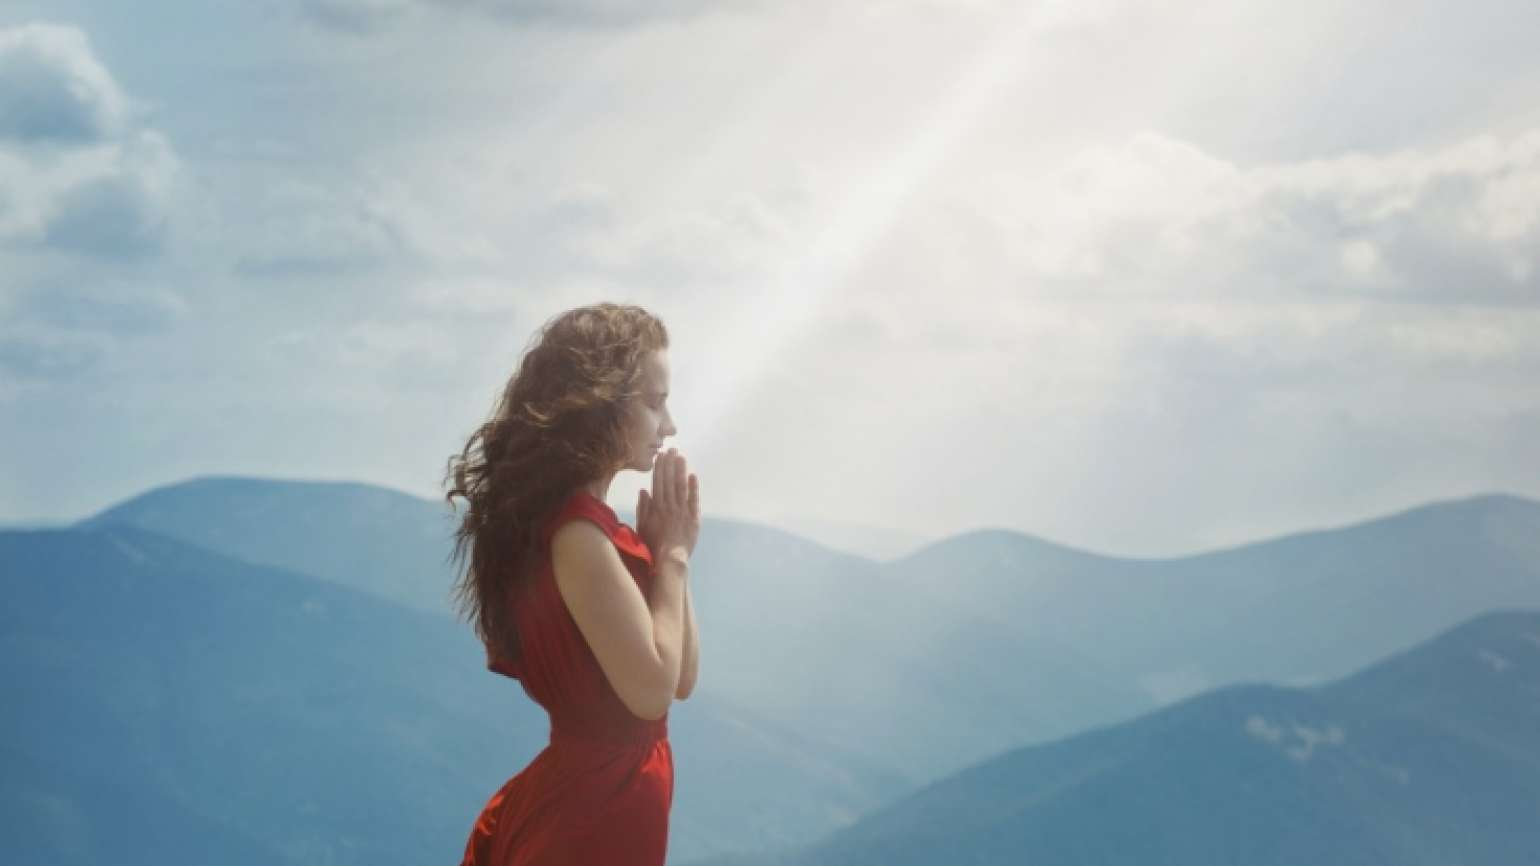 Woman praying in a ray of glorious light